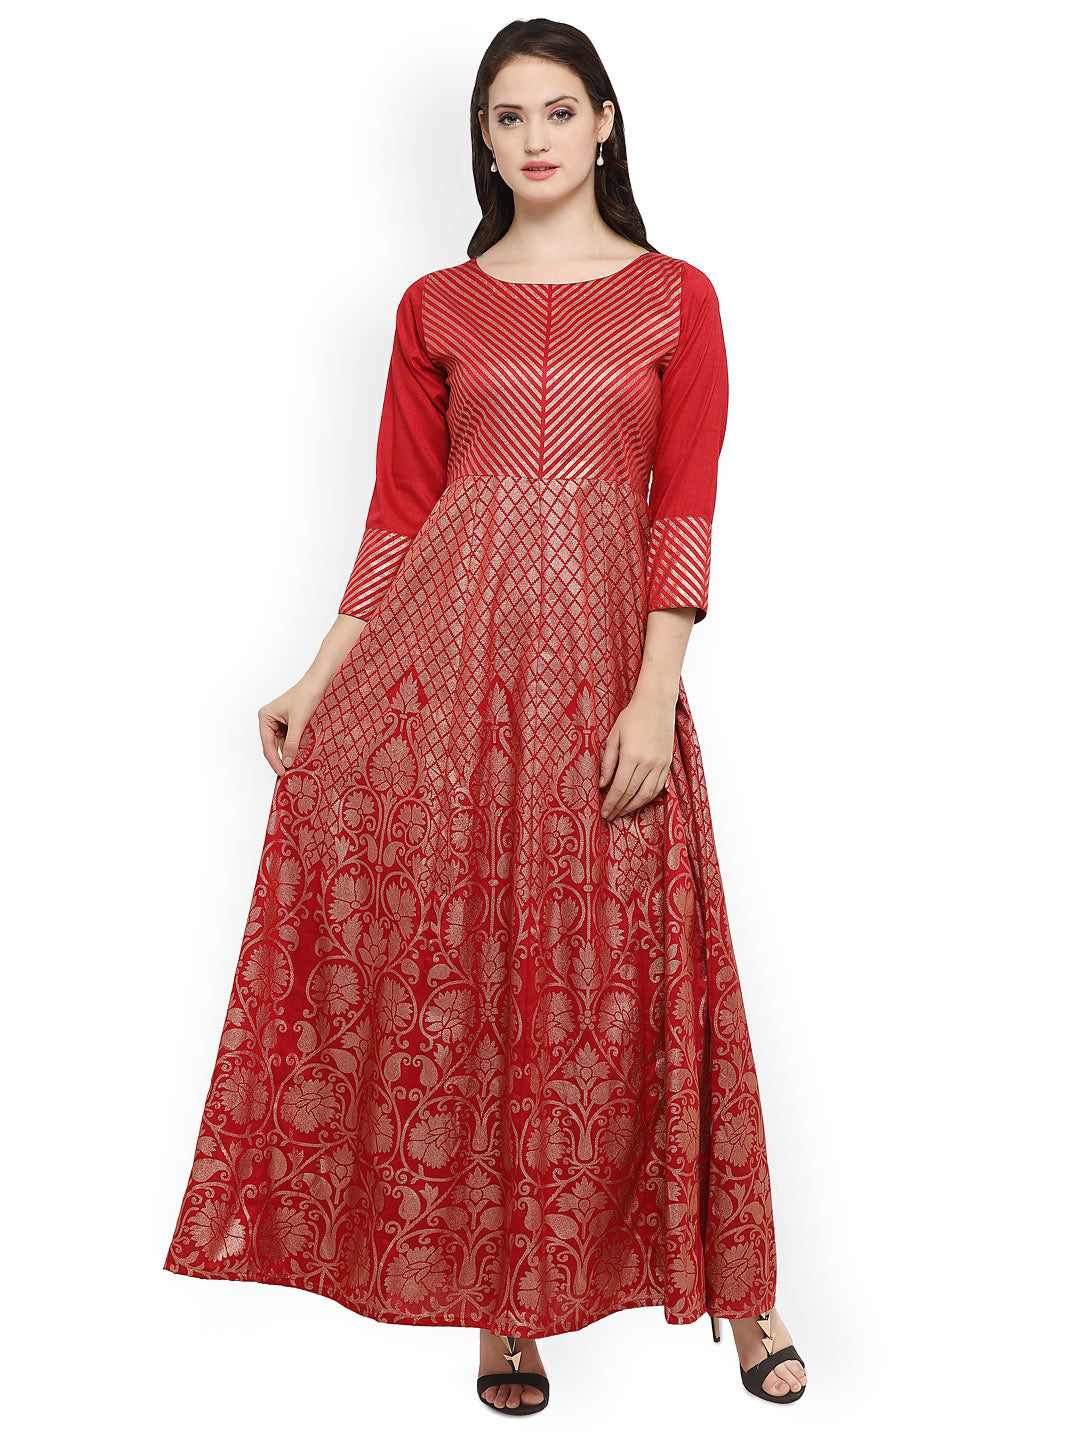 https://ladyindia.com/collections/anarkali-kurtis/products/floral-printed-cotton-silk-anarkali-kurti-red-printed-anarkali-kurta?variant=7876329635884